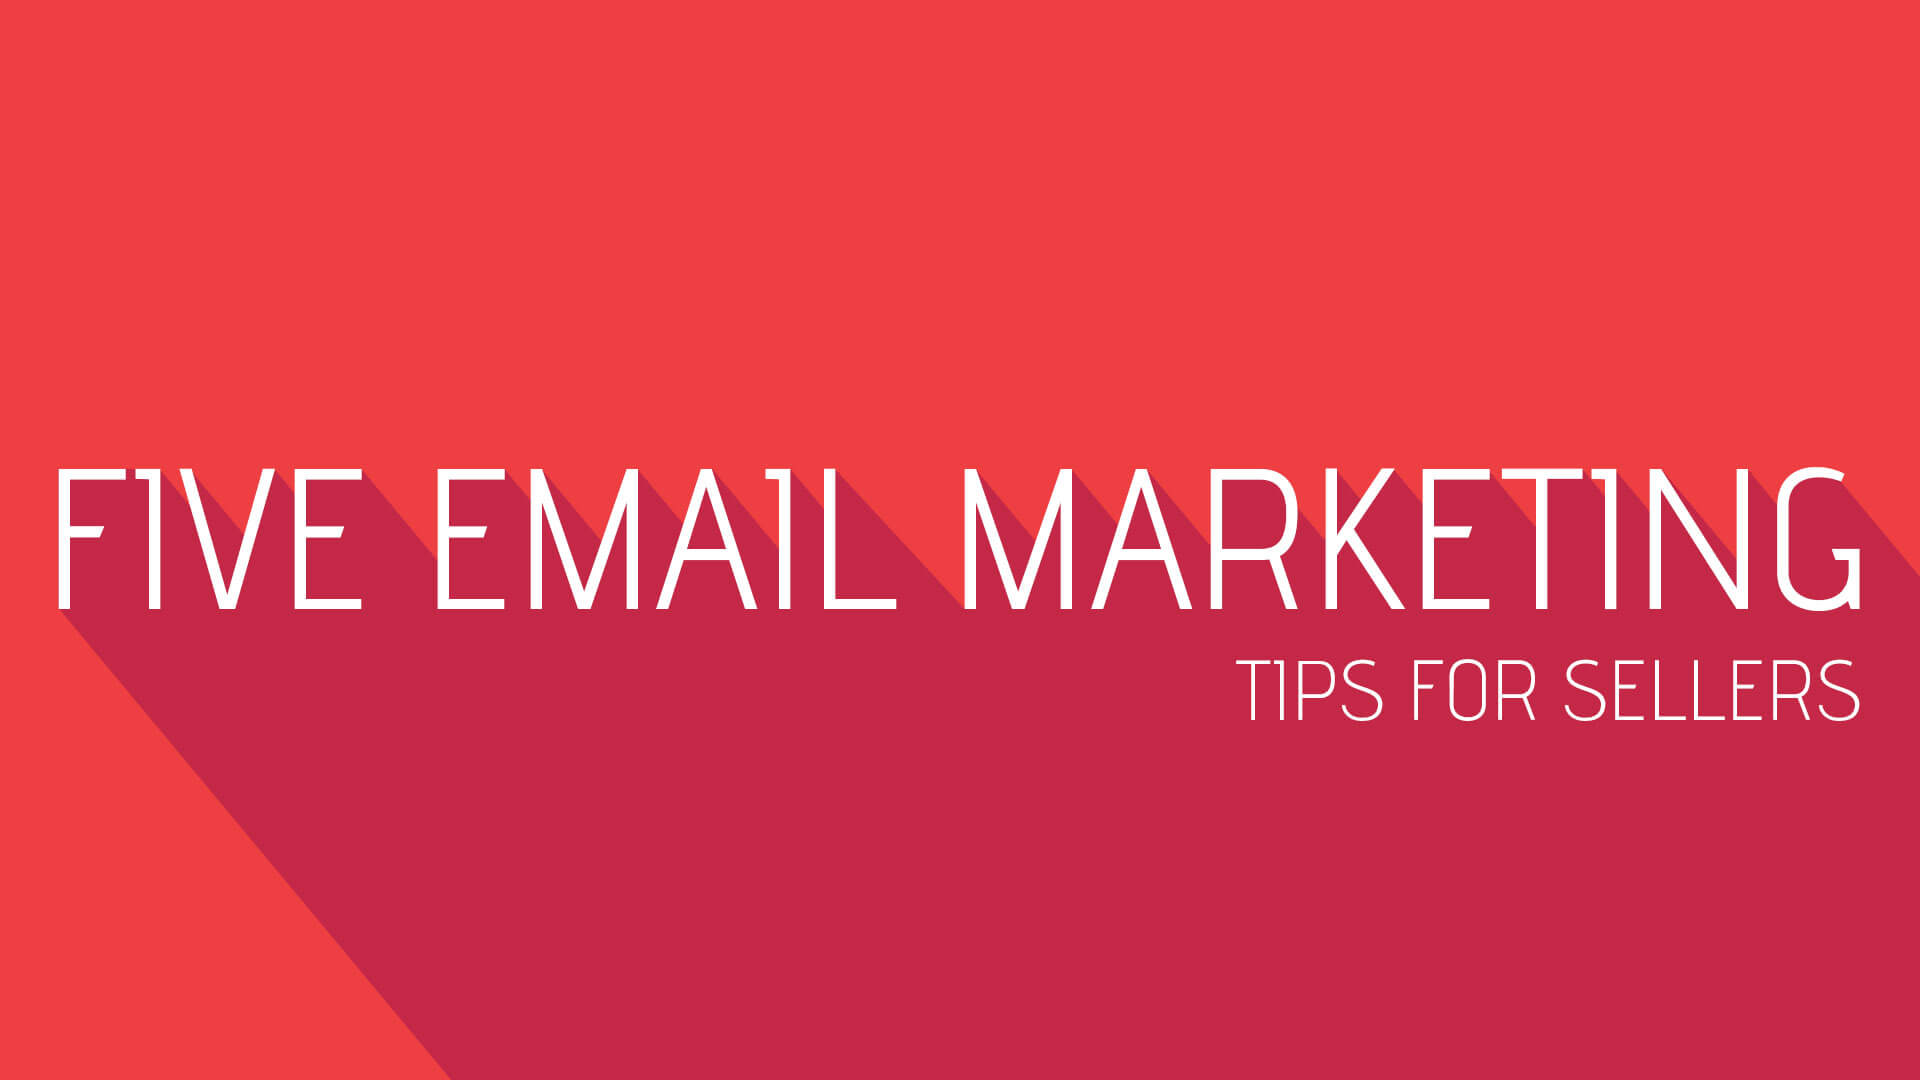 5 Email Marketing Tips for Sellers - Hill Media Group - Modesto Web ...